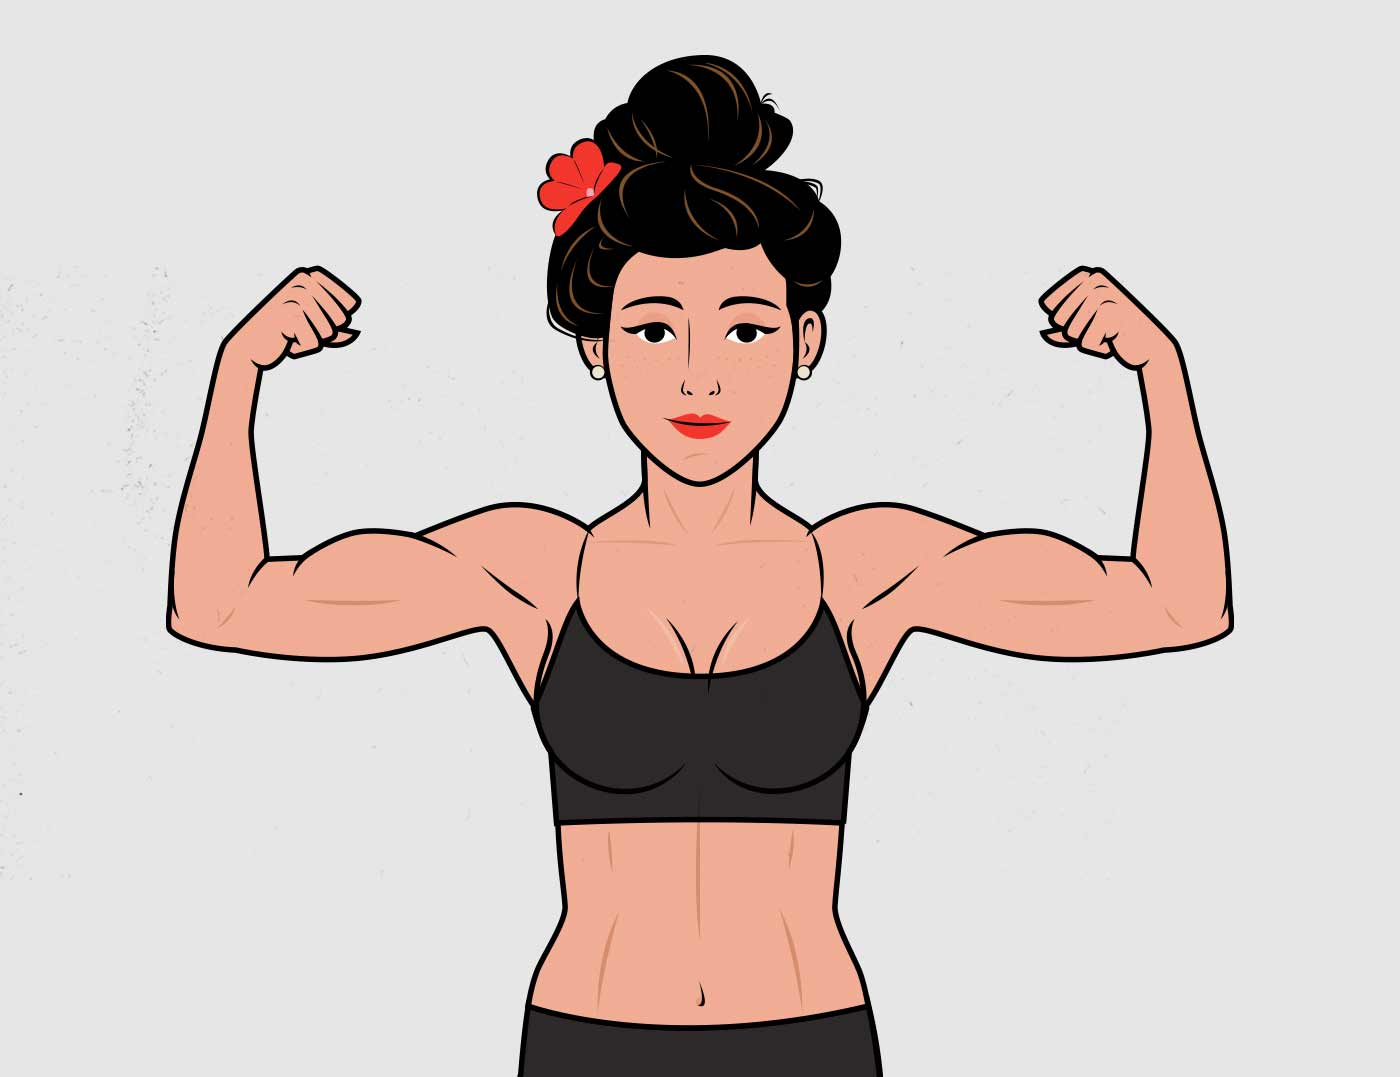 Illustration of a woman flexing her biceps.